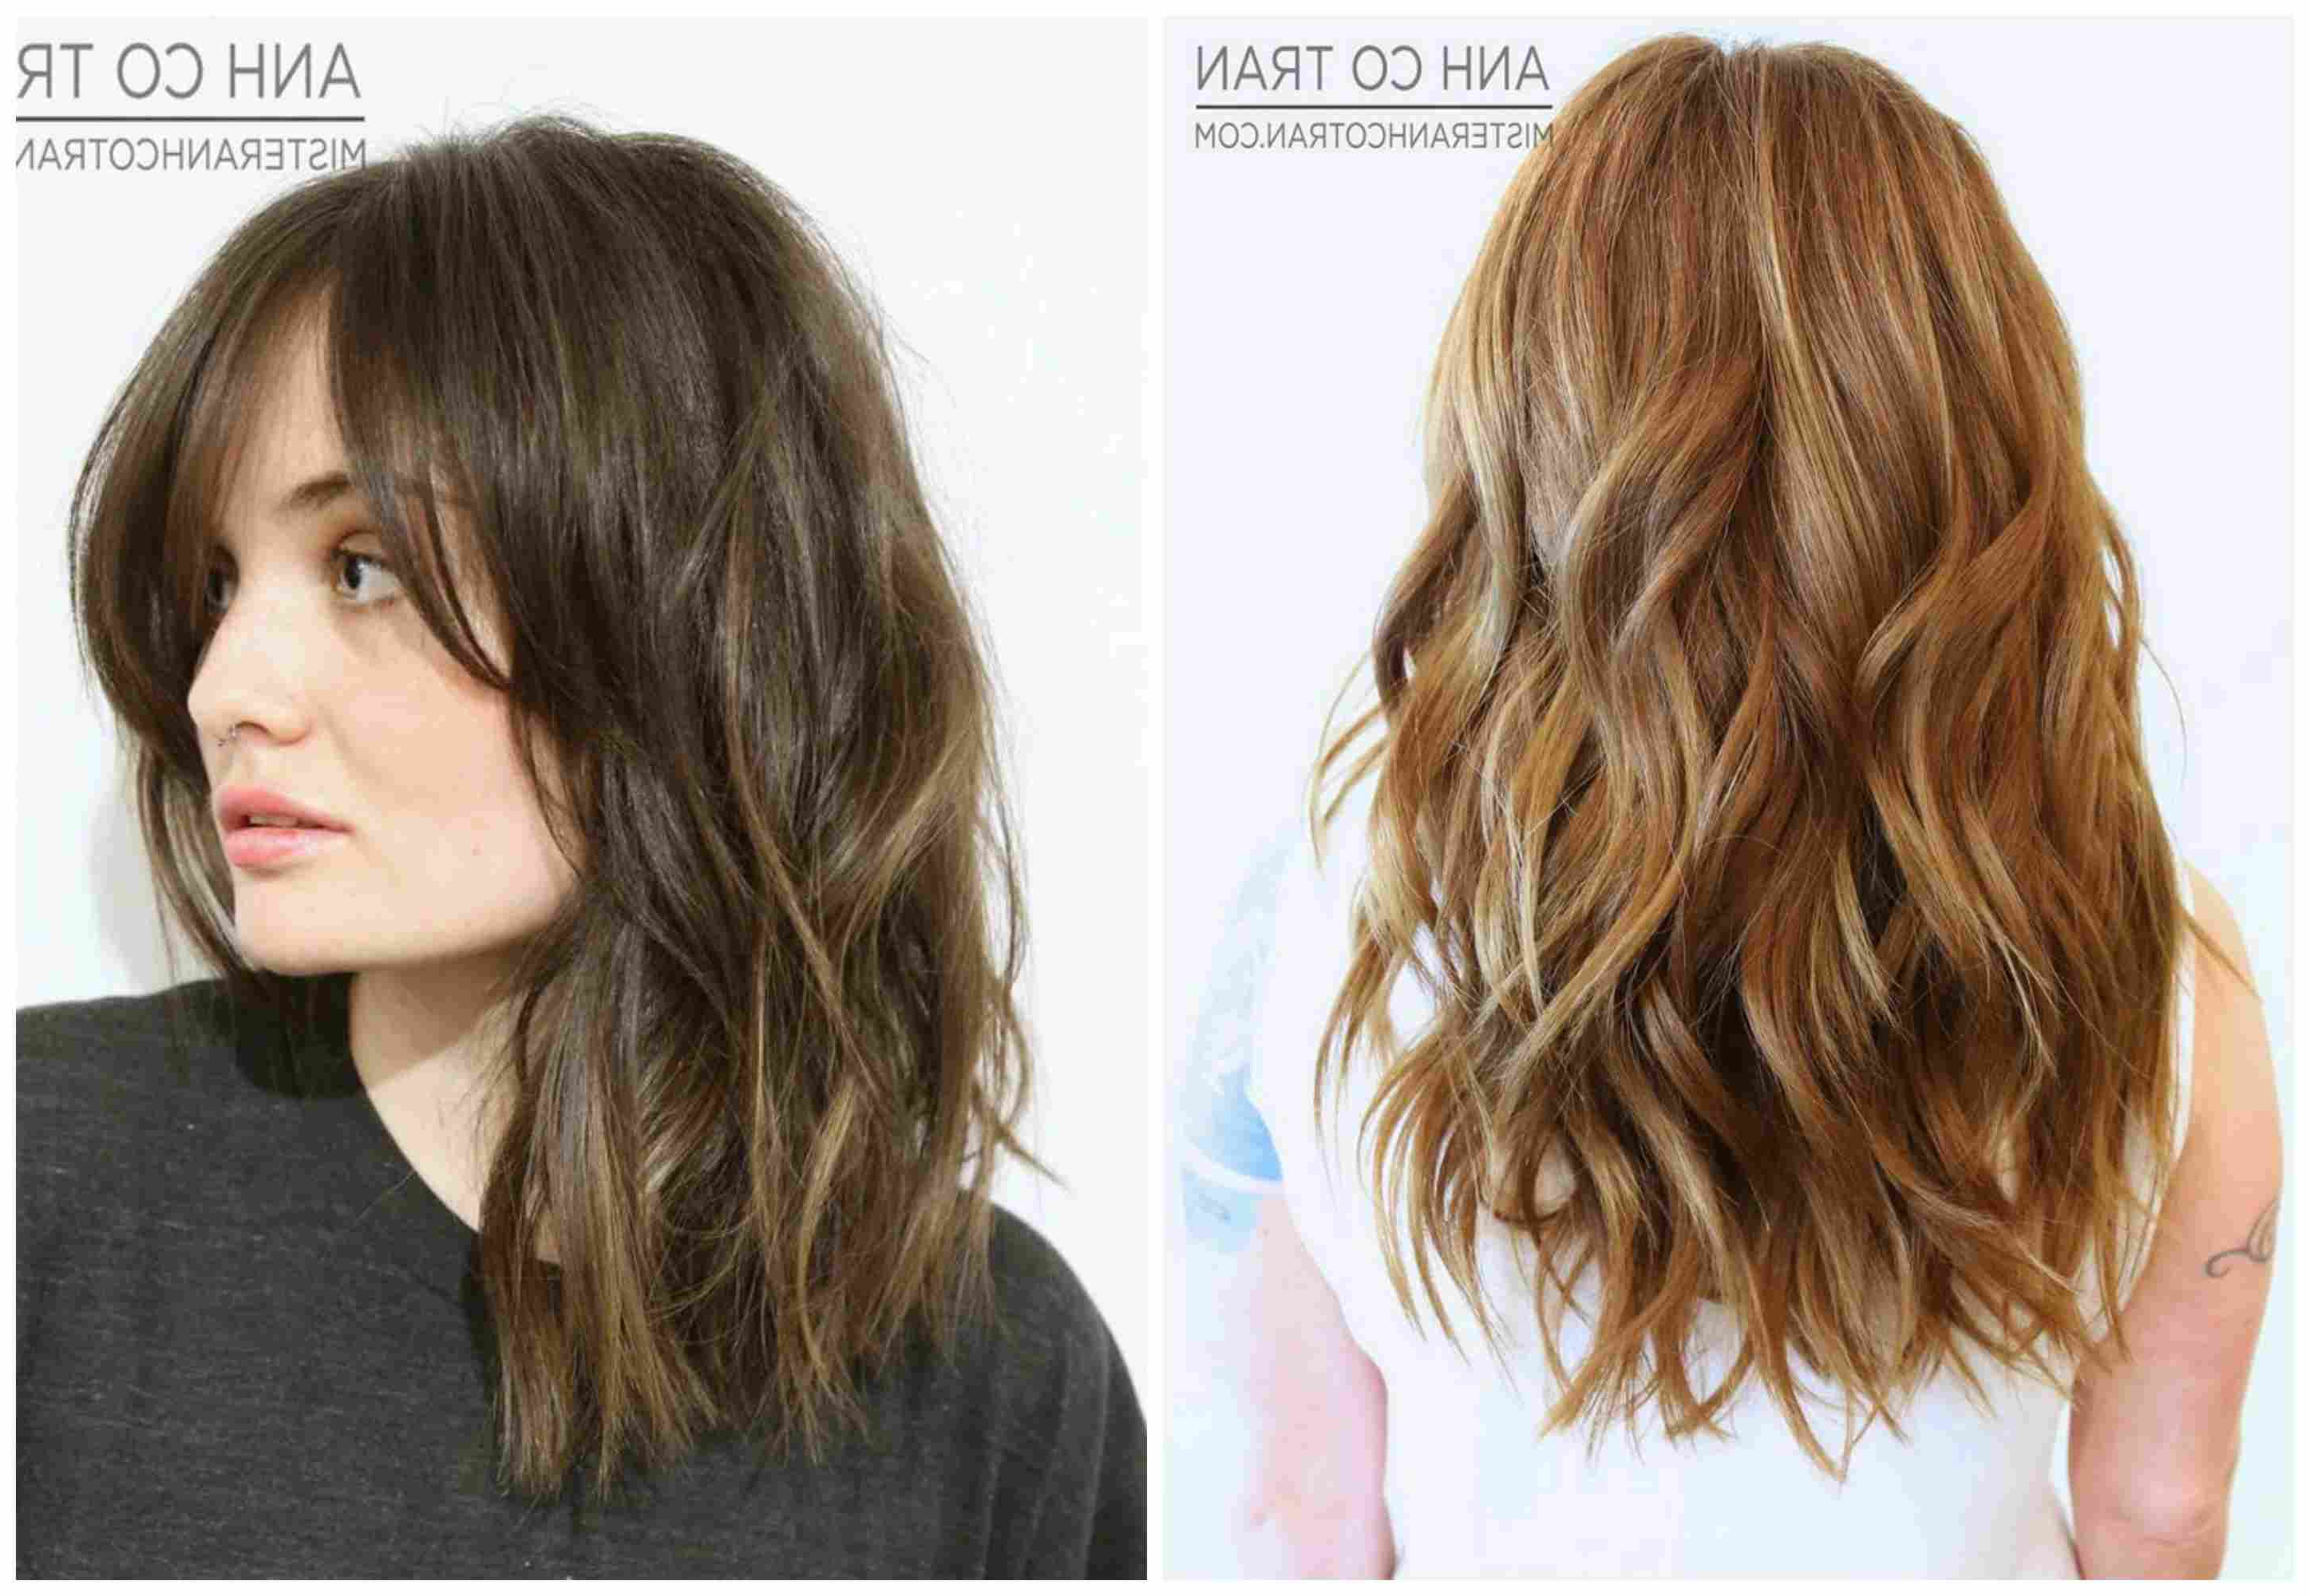 Long Wavy Hair: The Best Cuts, Colors And Styles Within Short Bob Haircuts With Waves (View 18 of 20)